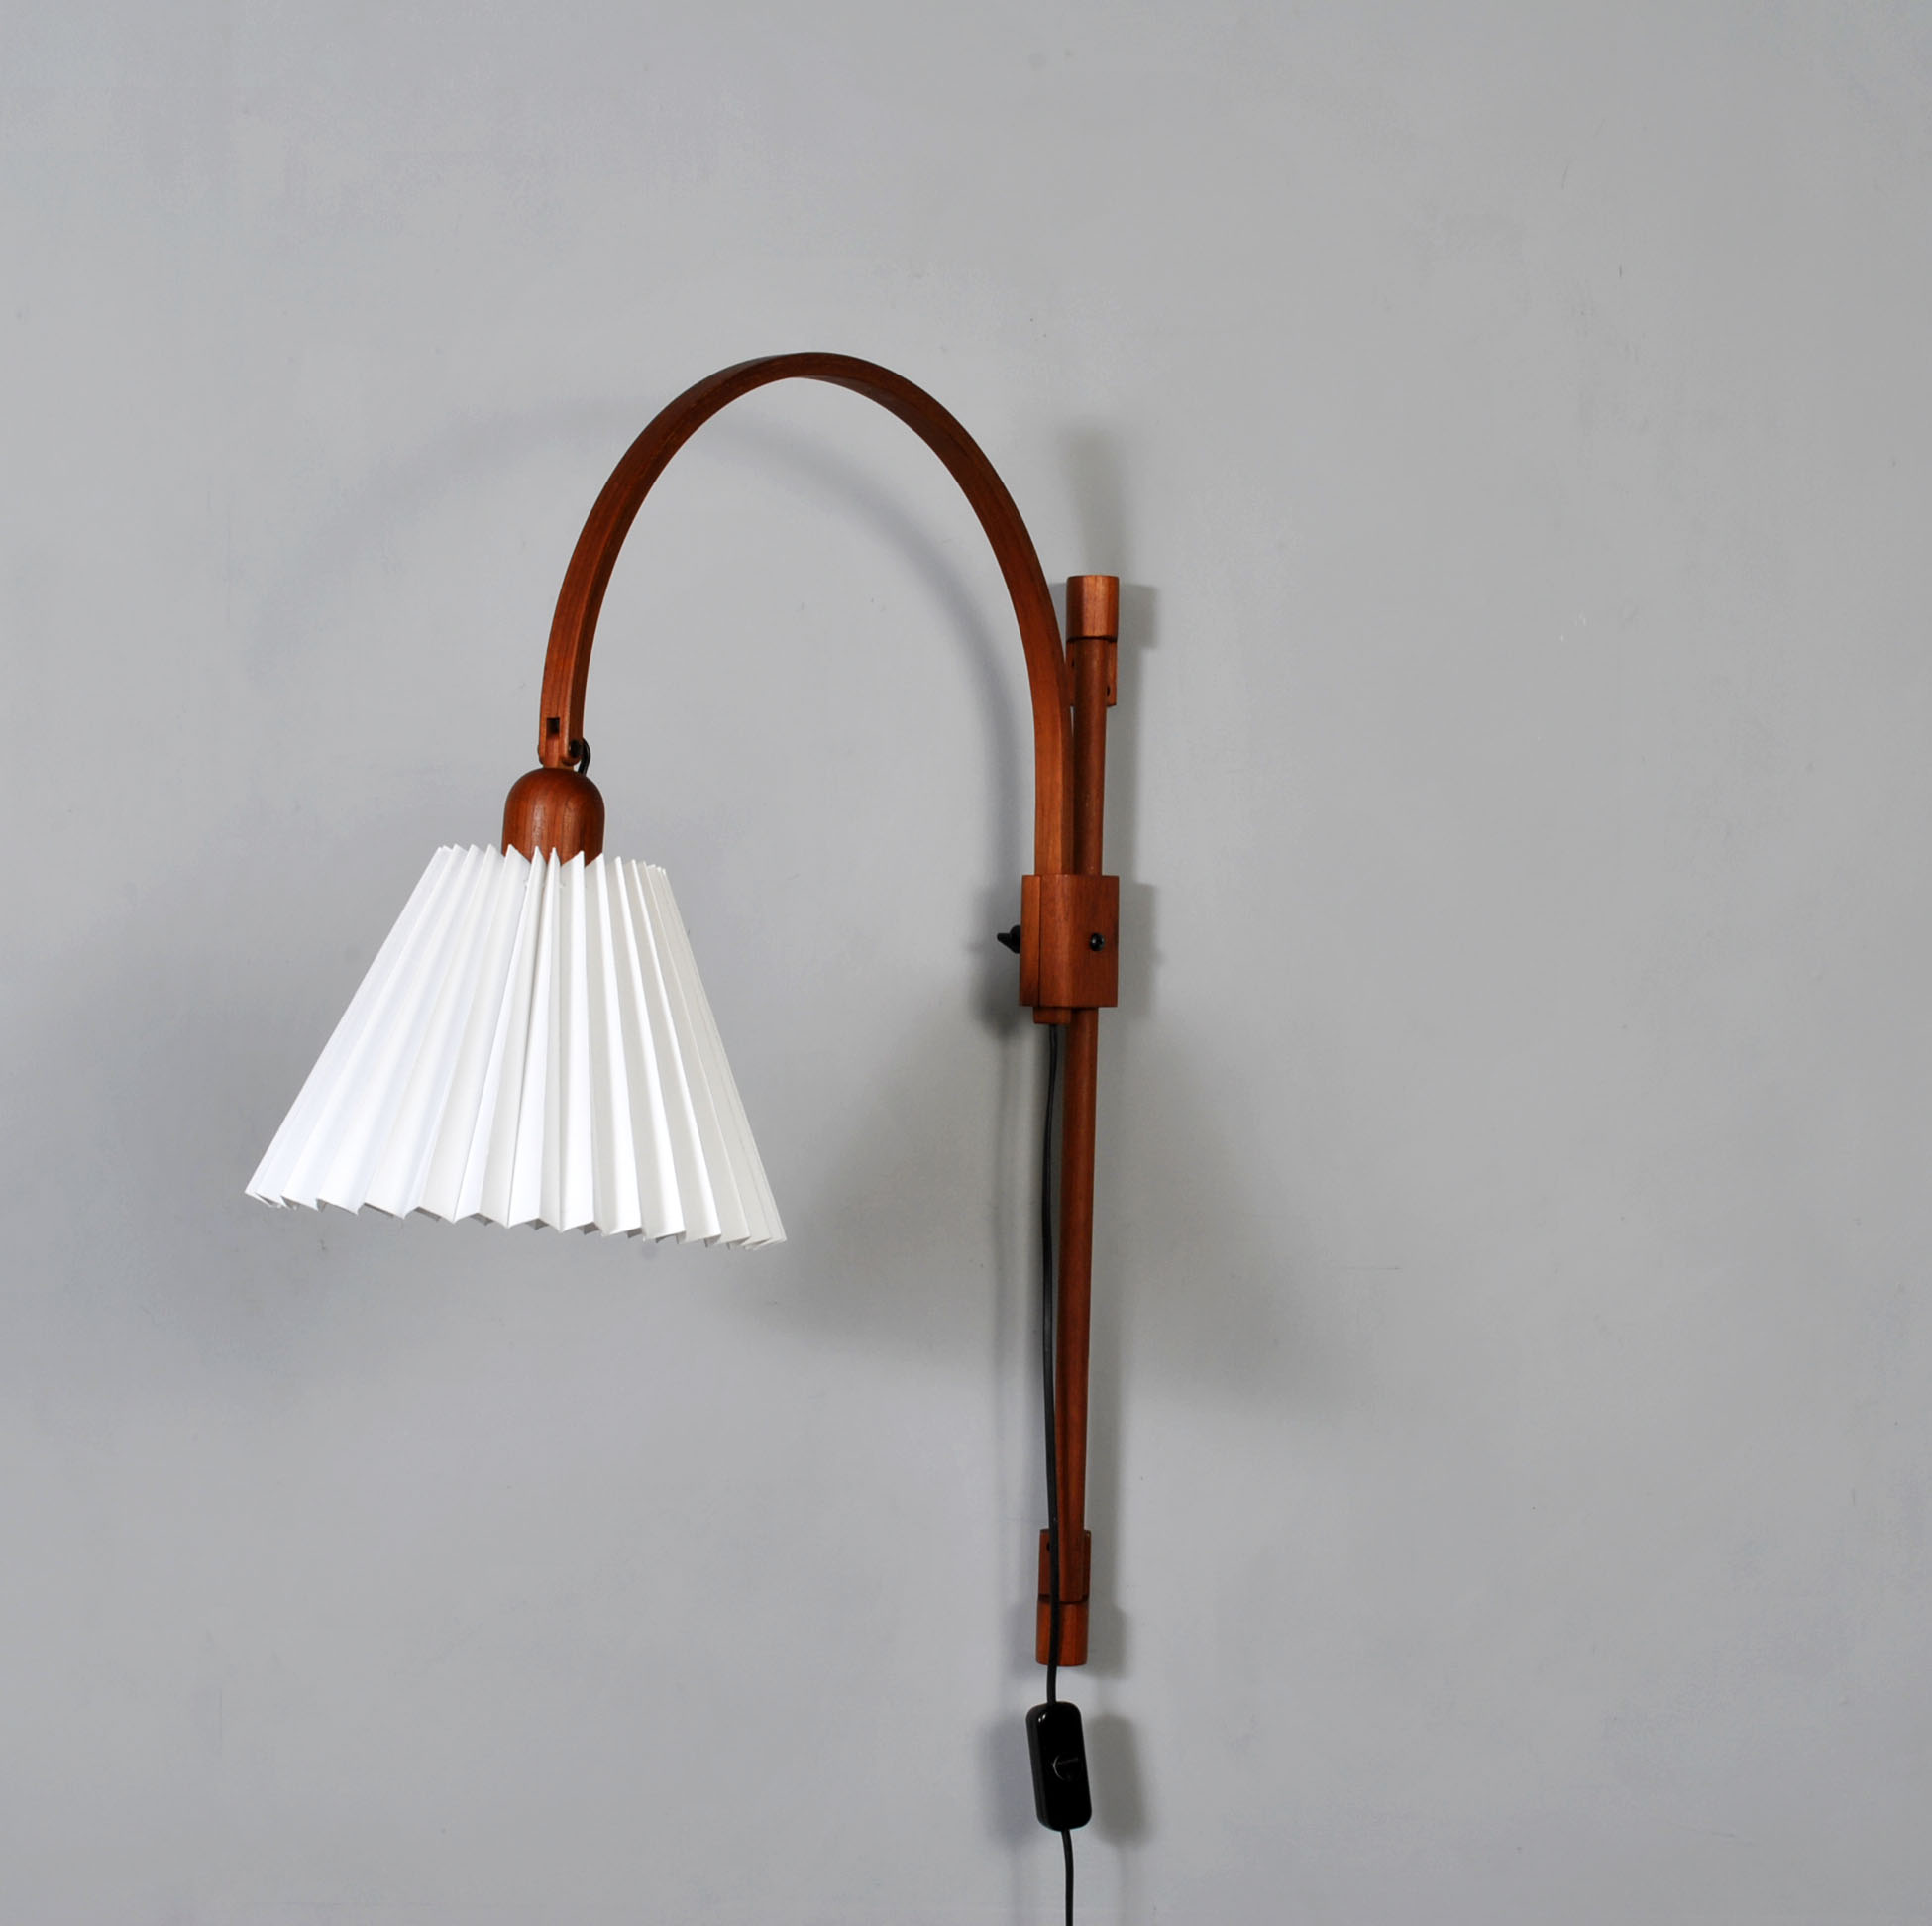 Midcentury Adjustable teak wall lamp by